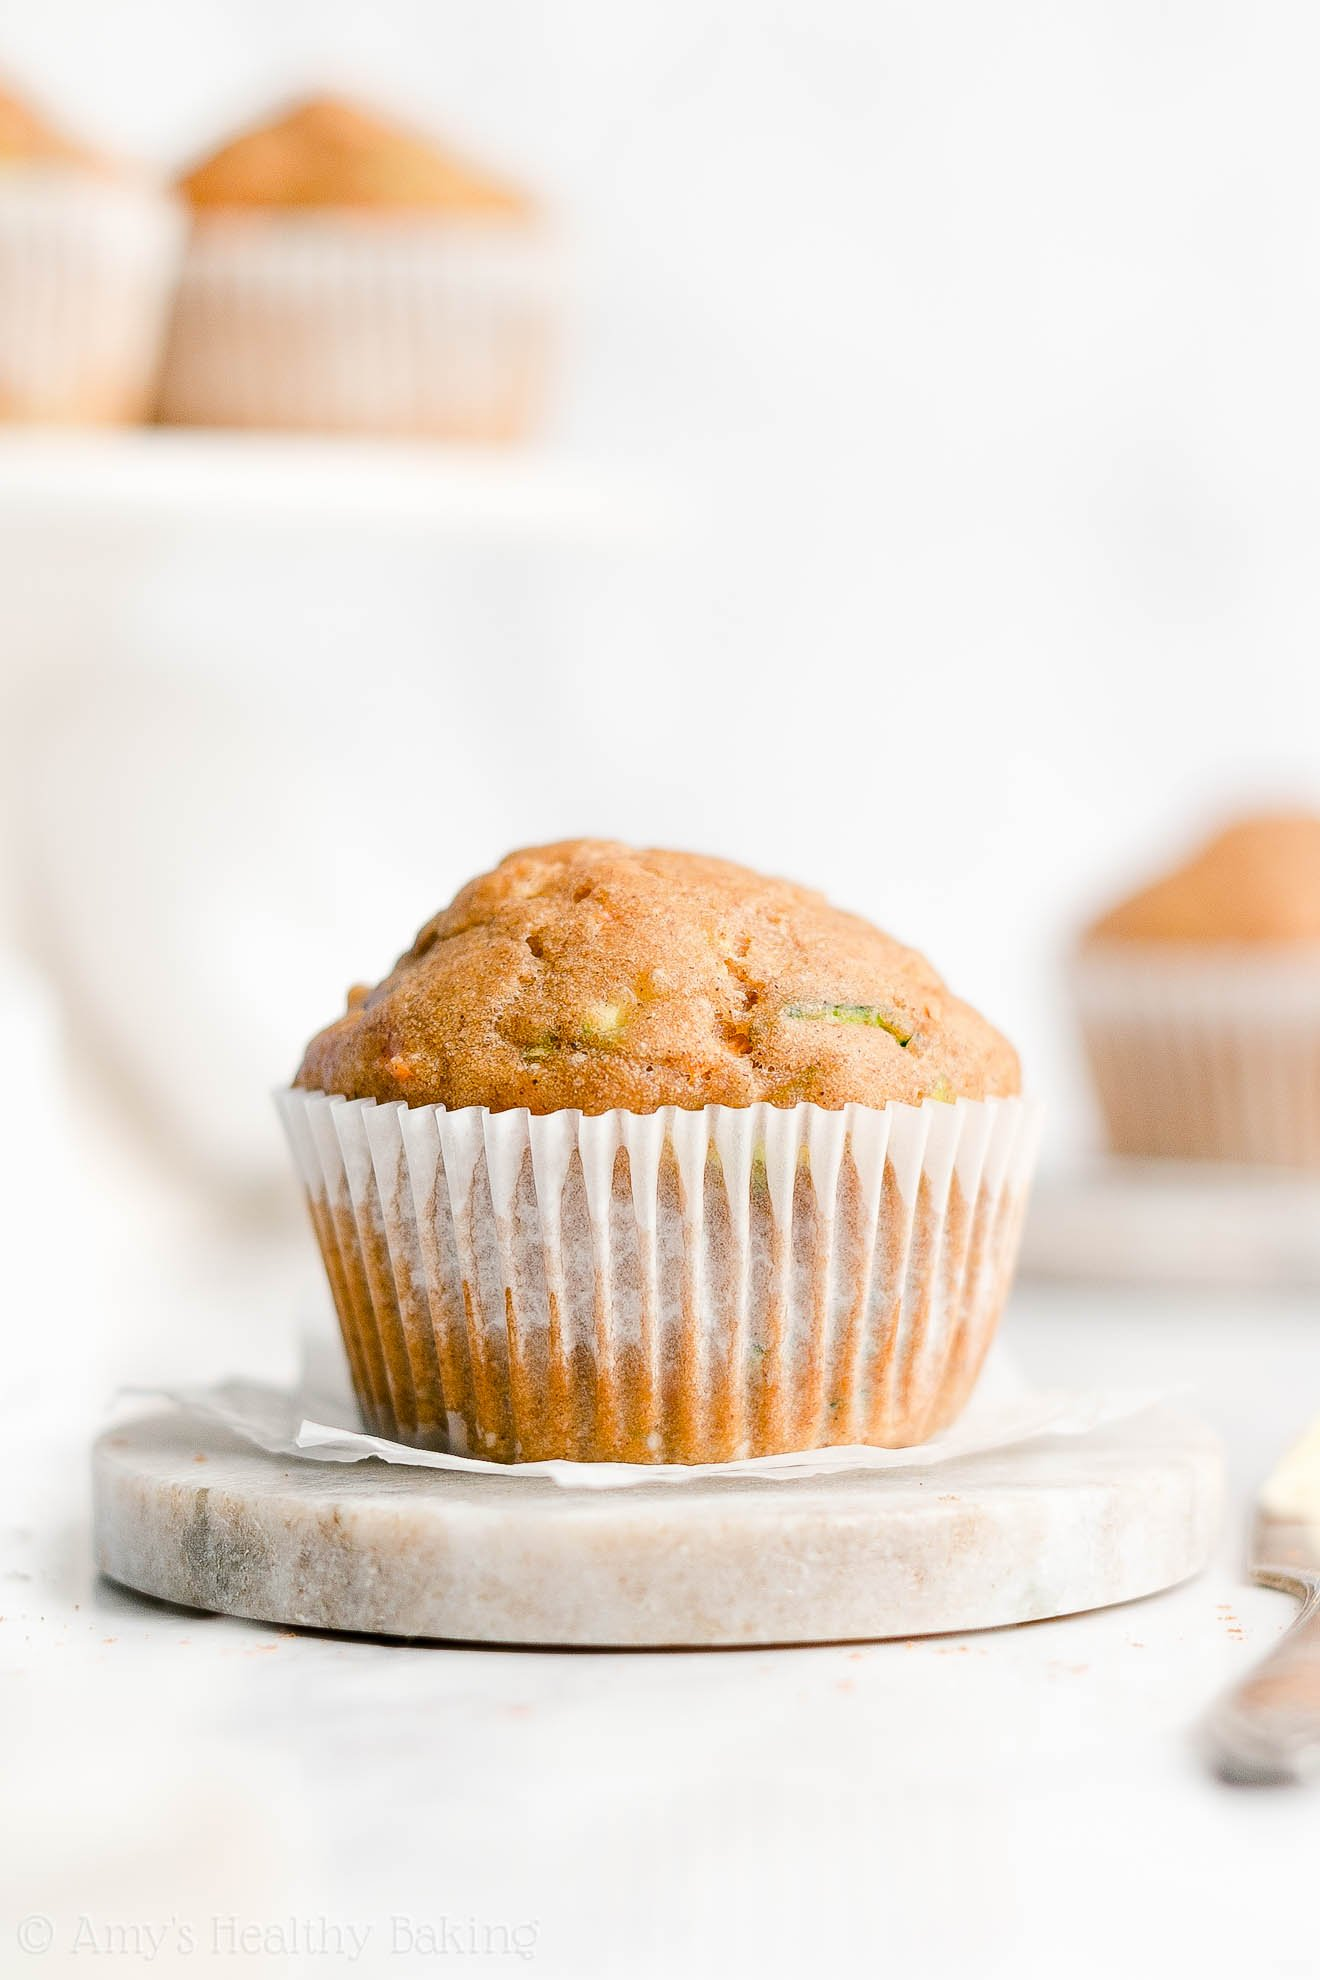 Easy Healthy Low Fat Low Sugar Clean Eating Spiced Carrot Zucchini Muffins